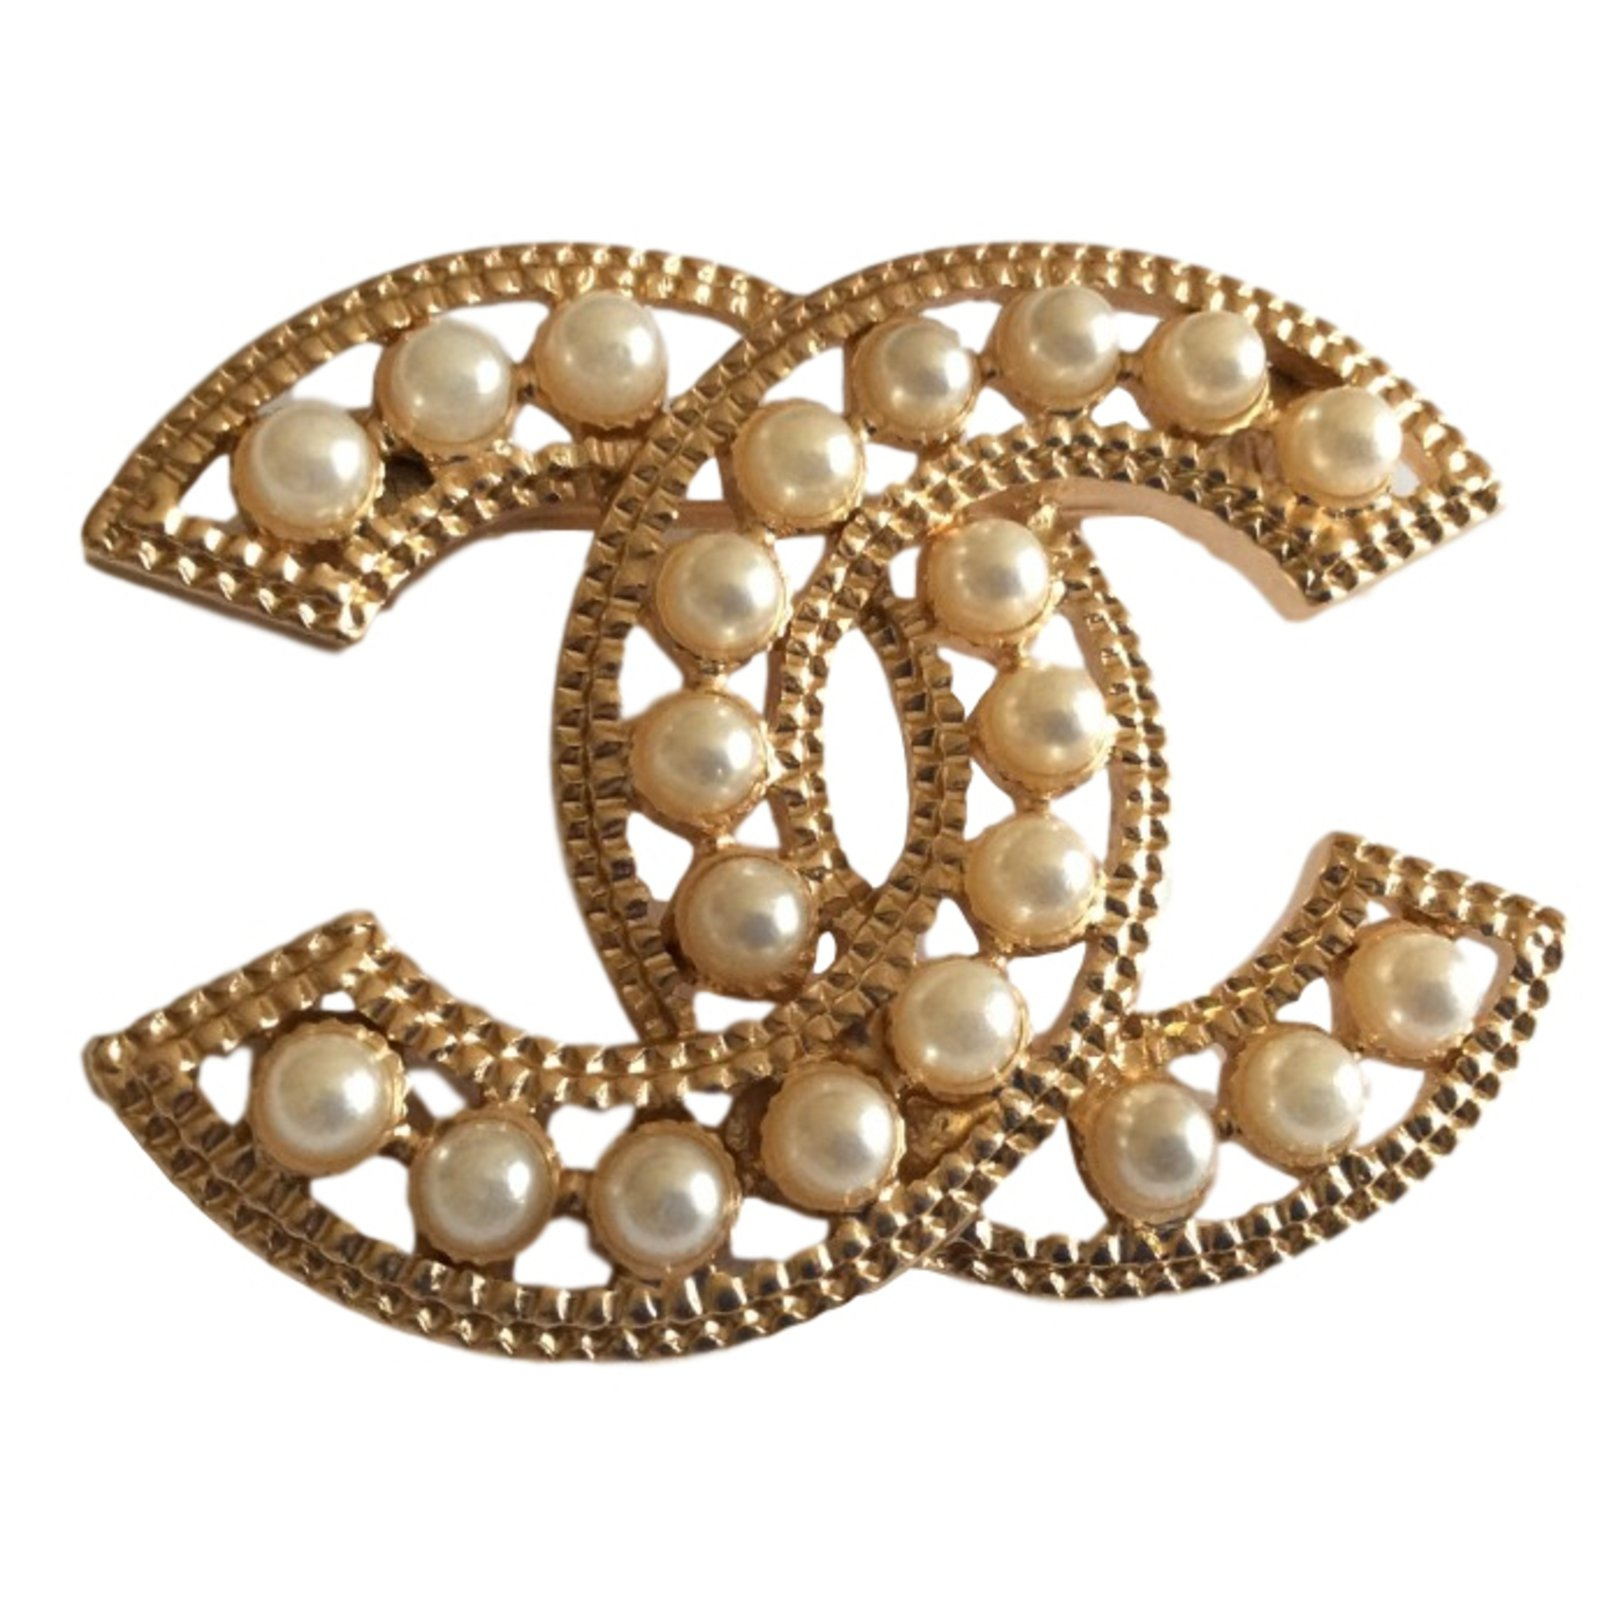 ref chanel metal brooches womens gb jewellery golden preloved designers en pins brooch women